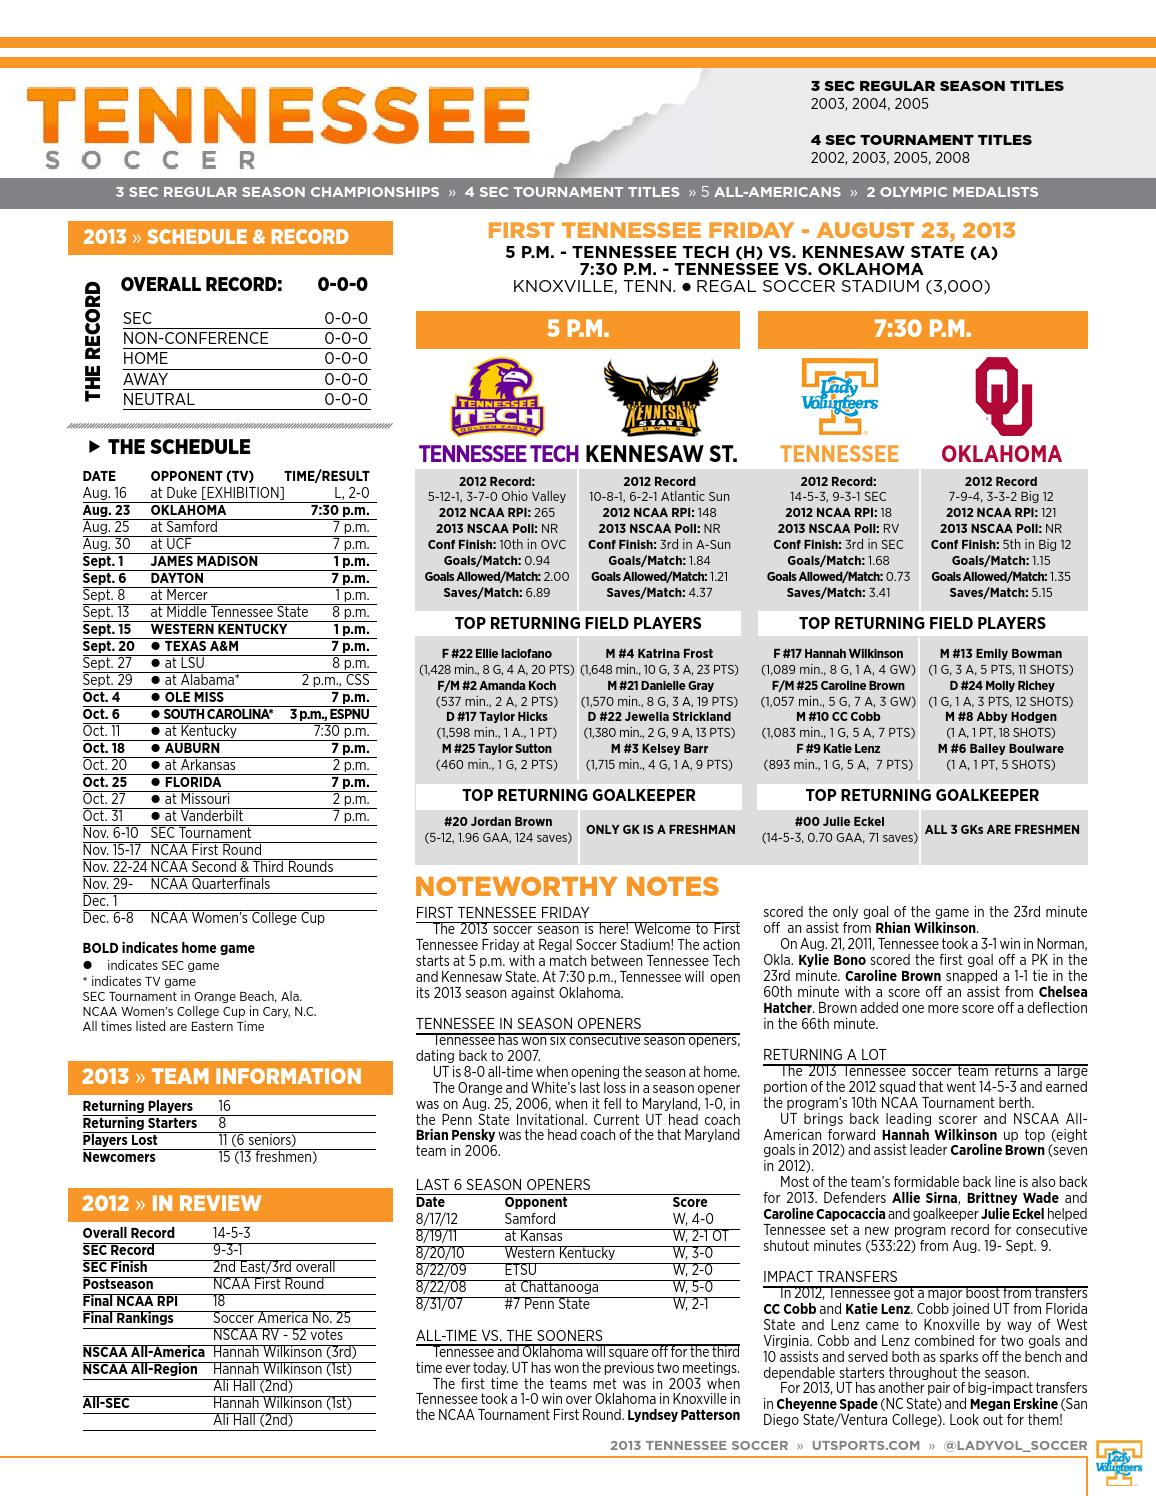 ebf4f5dacd3 Tennessee Soccer 2013 Match Notes: Oklahoma by The University of Tennessee  Athletics Department - issuu